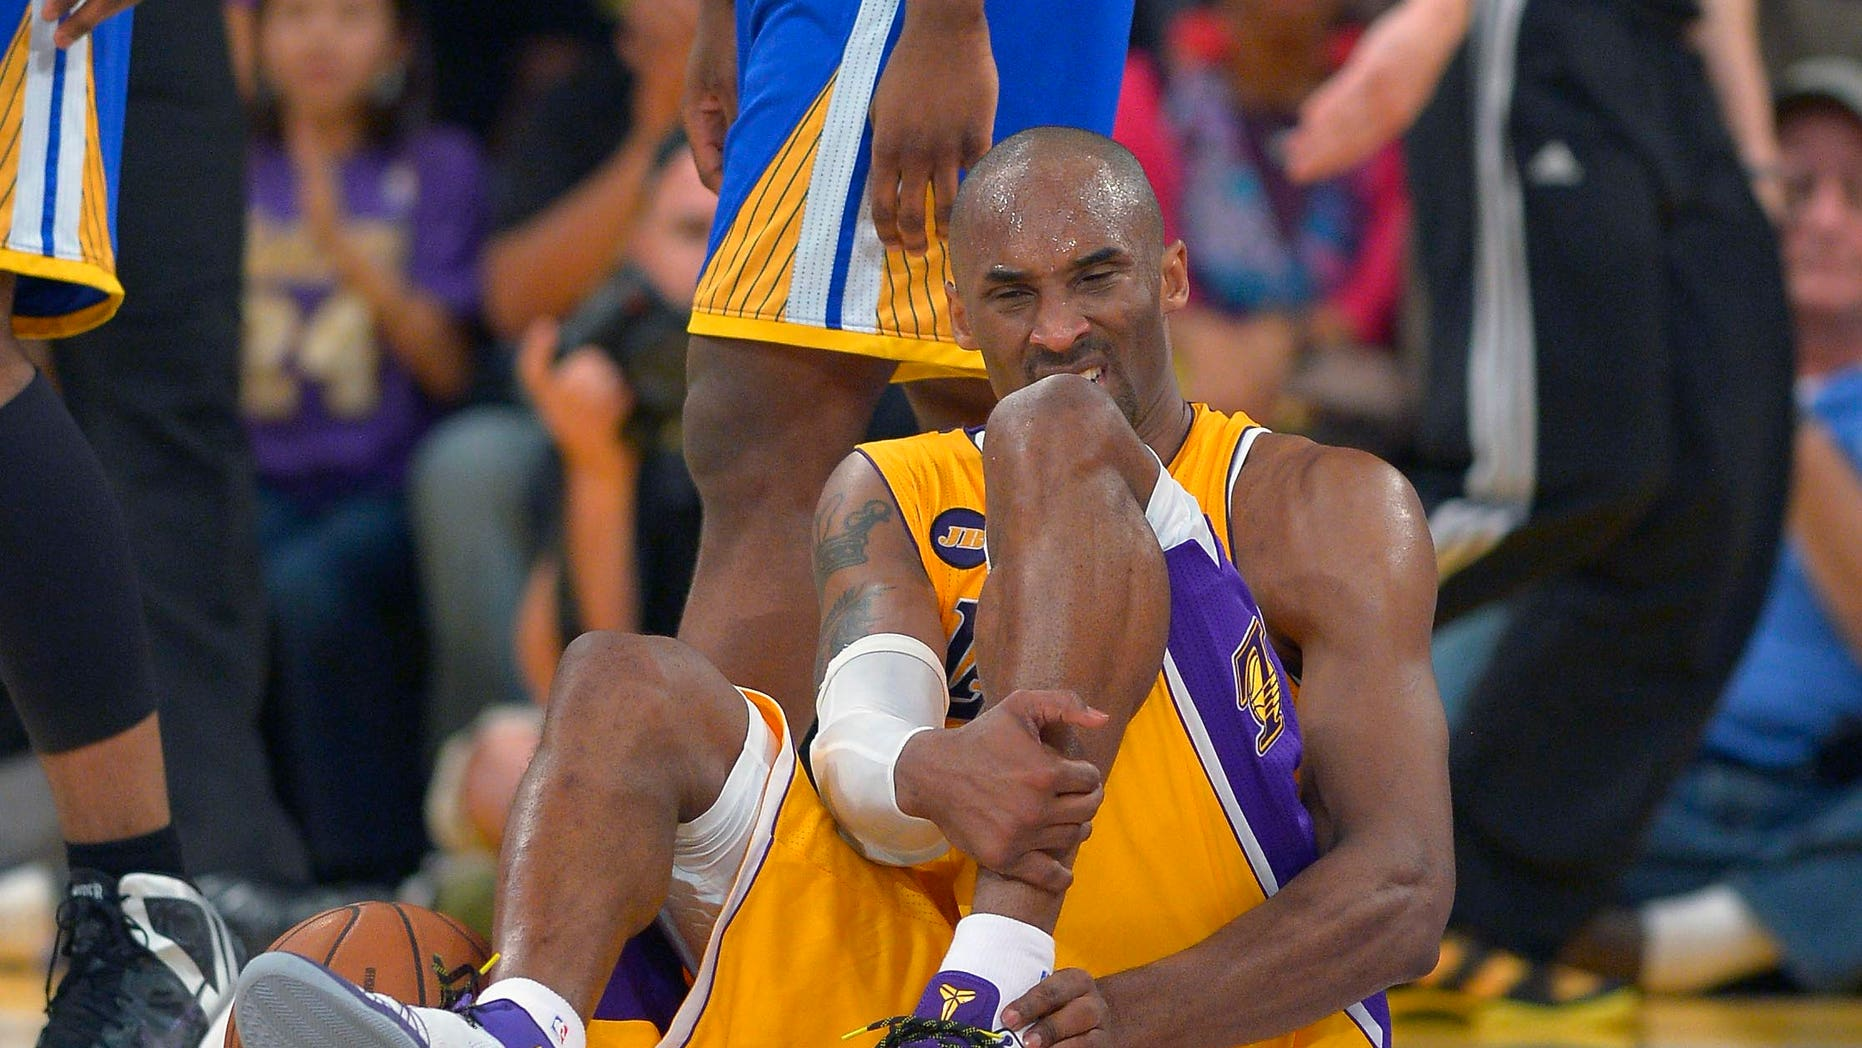 April 12, 2013: Los Angeles Lakers guard Kobe Bryant grimaces after being injured during the second half of their NBA basketball game against the Golden State Warriors in Los Angeles.